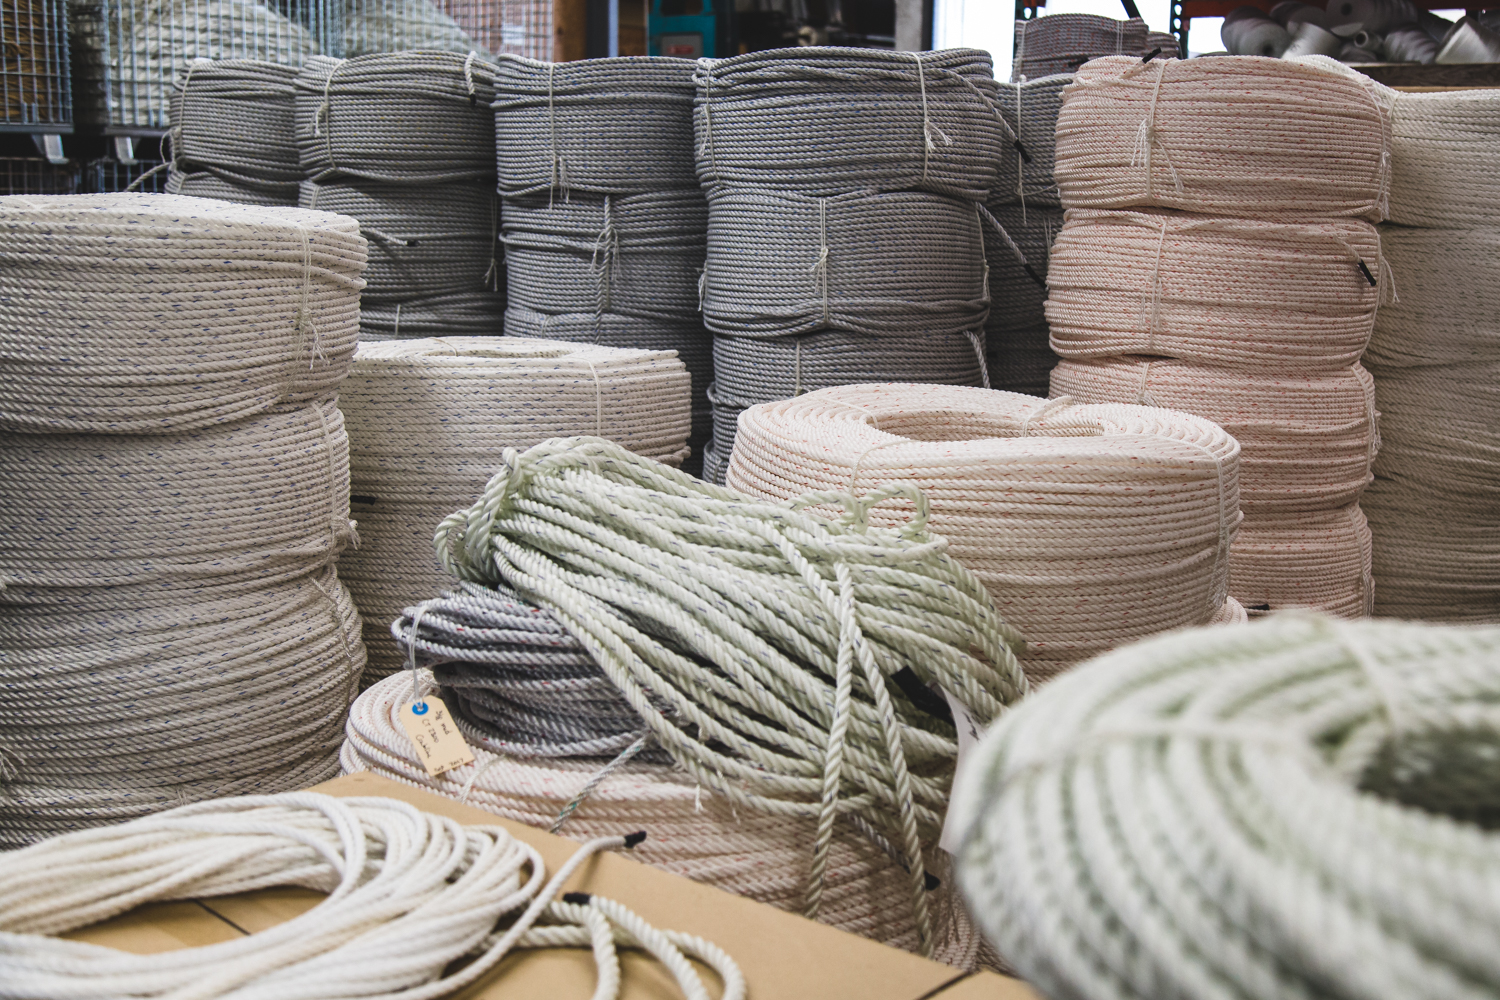 Proudly made in the USA - Since 1979, Everson Cordage Works has manufactured our products at our plant right here in the USA. We stand behind our ropes and twines.